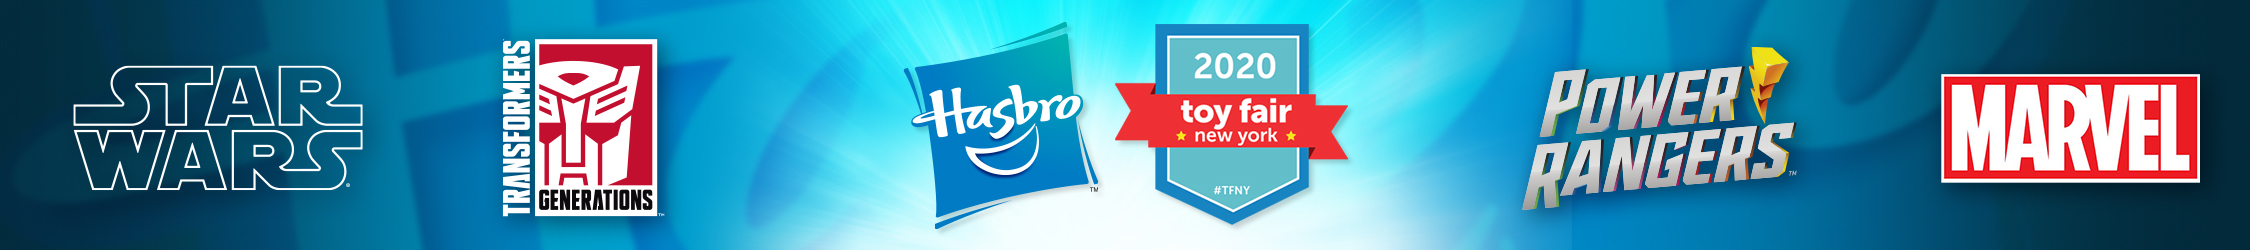 Hasbro New York Toy Fair 2020